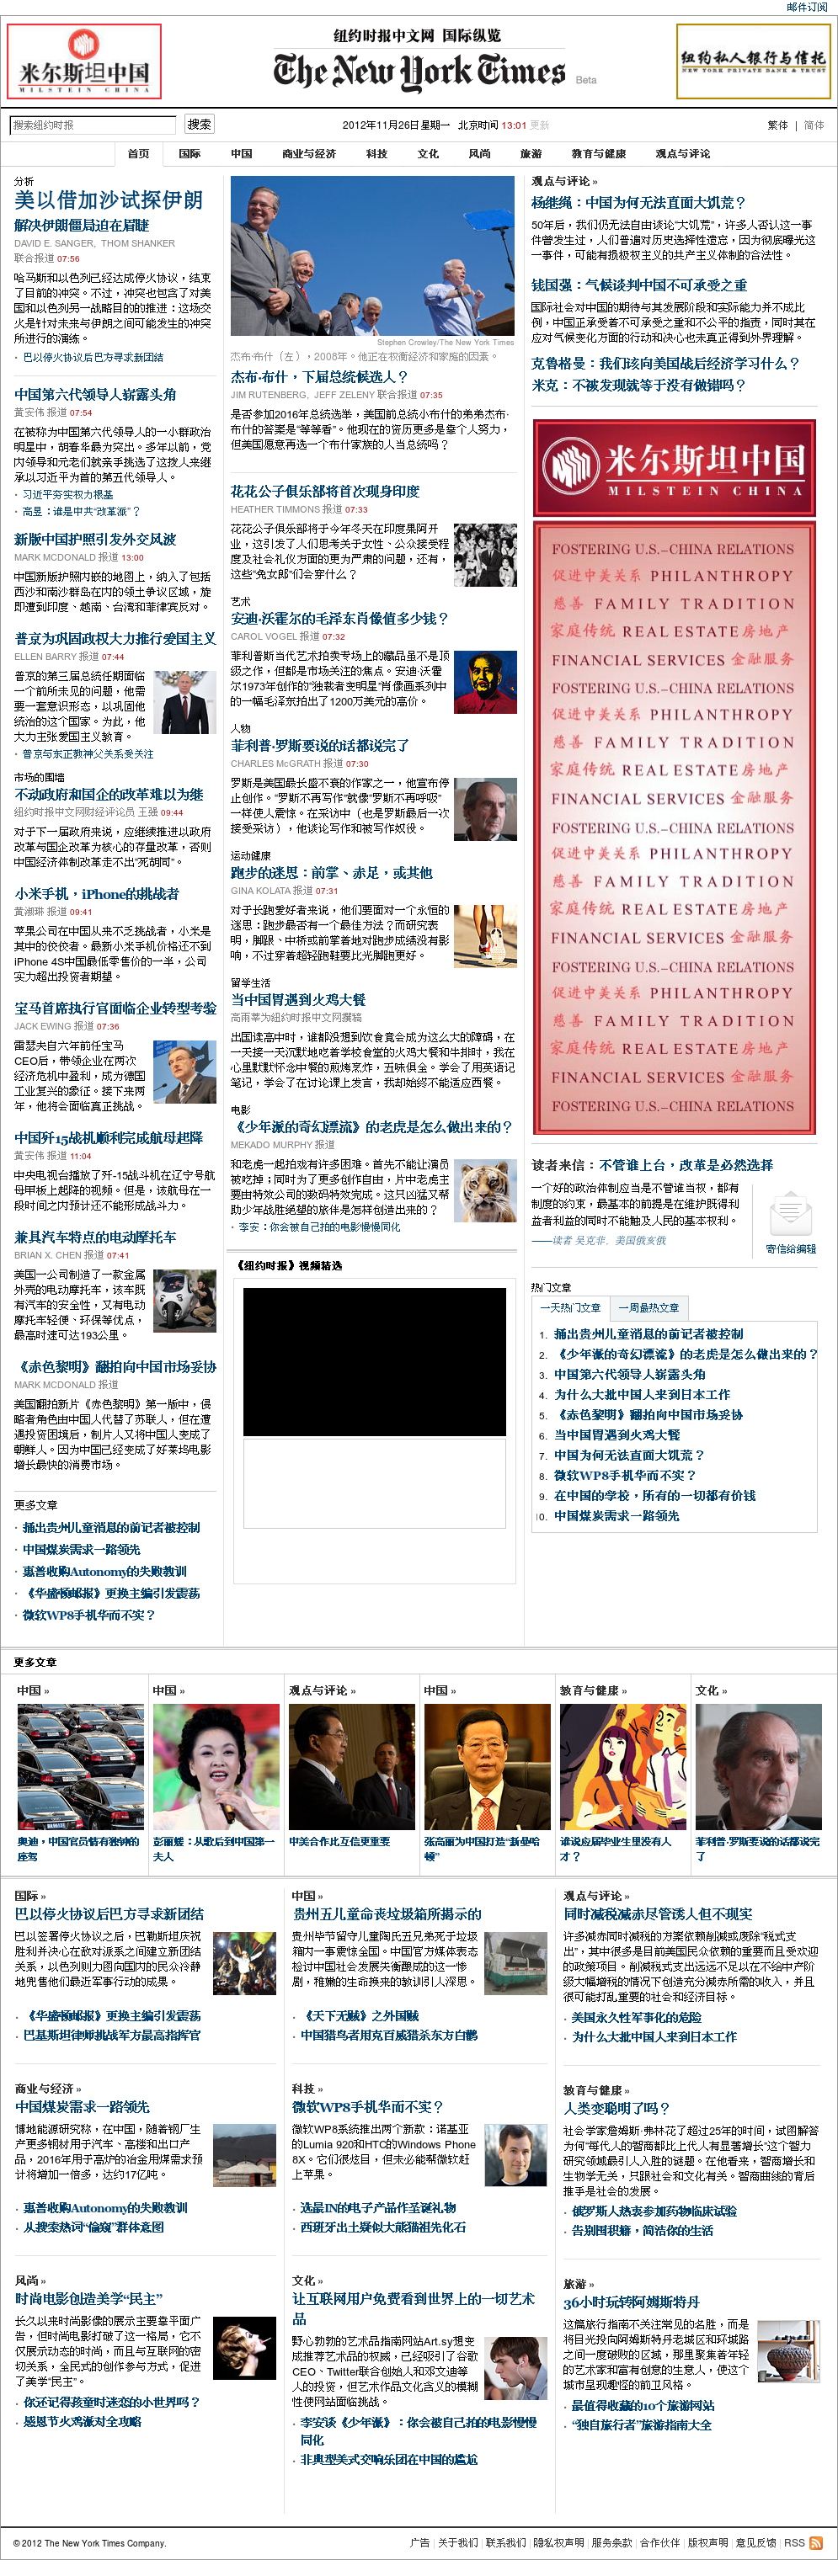 The New York Times (Chinese) at Monday Nov. 26, 2012, 5:19 a.m. UTC